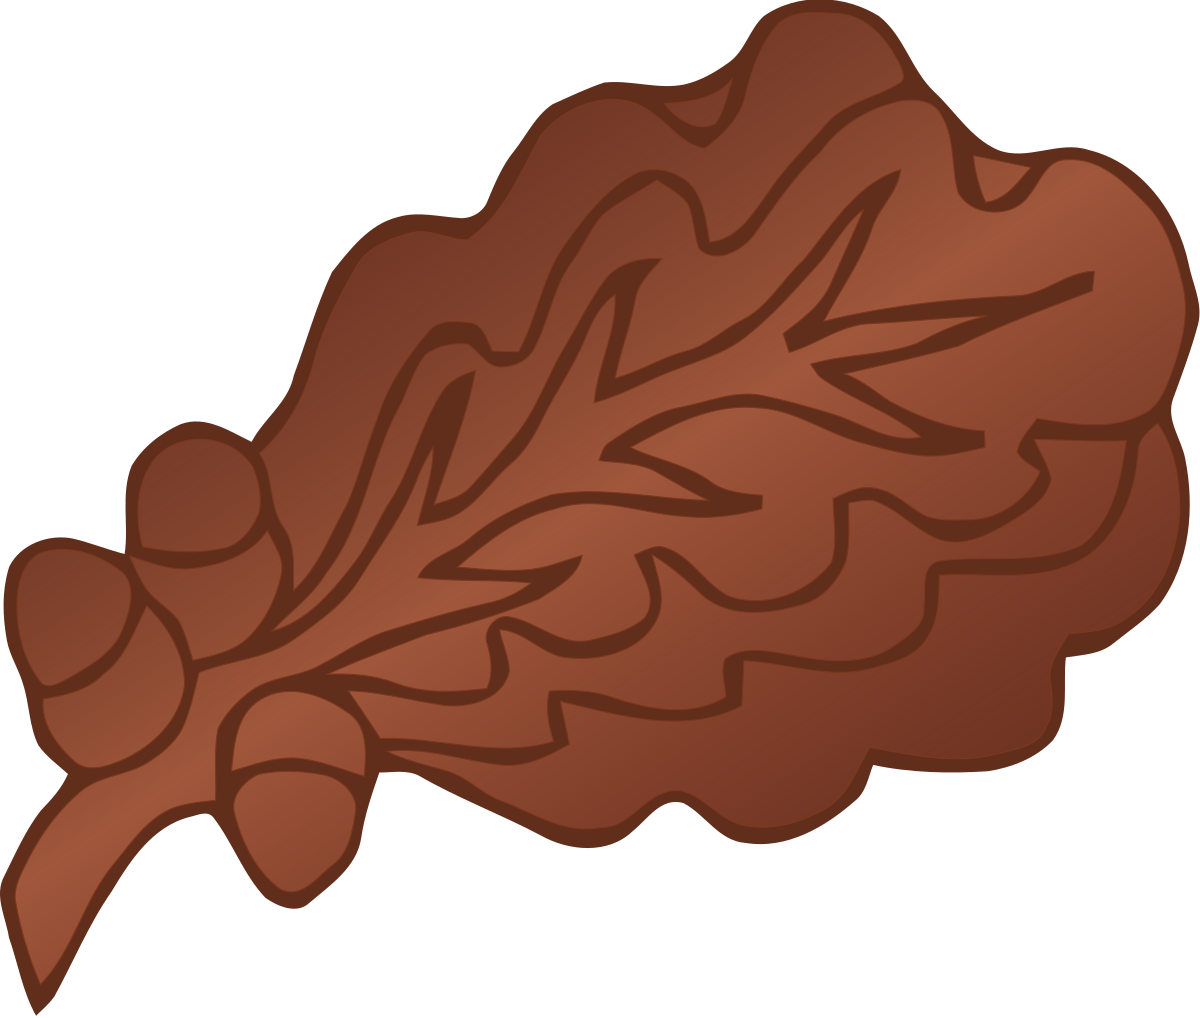 Clipart army bronze star svg free library Feuilles de chêne (décoration militaire) — Wikipédia svg free library